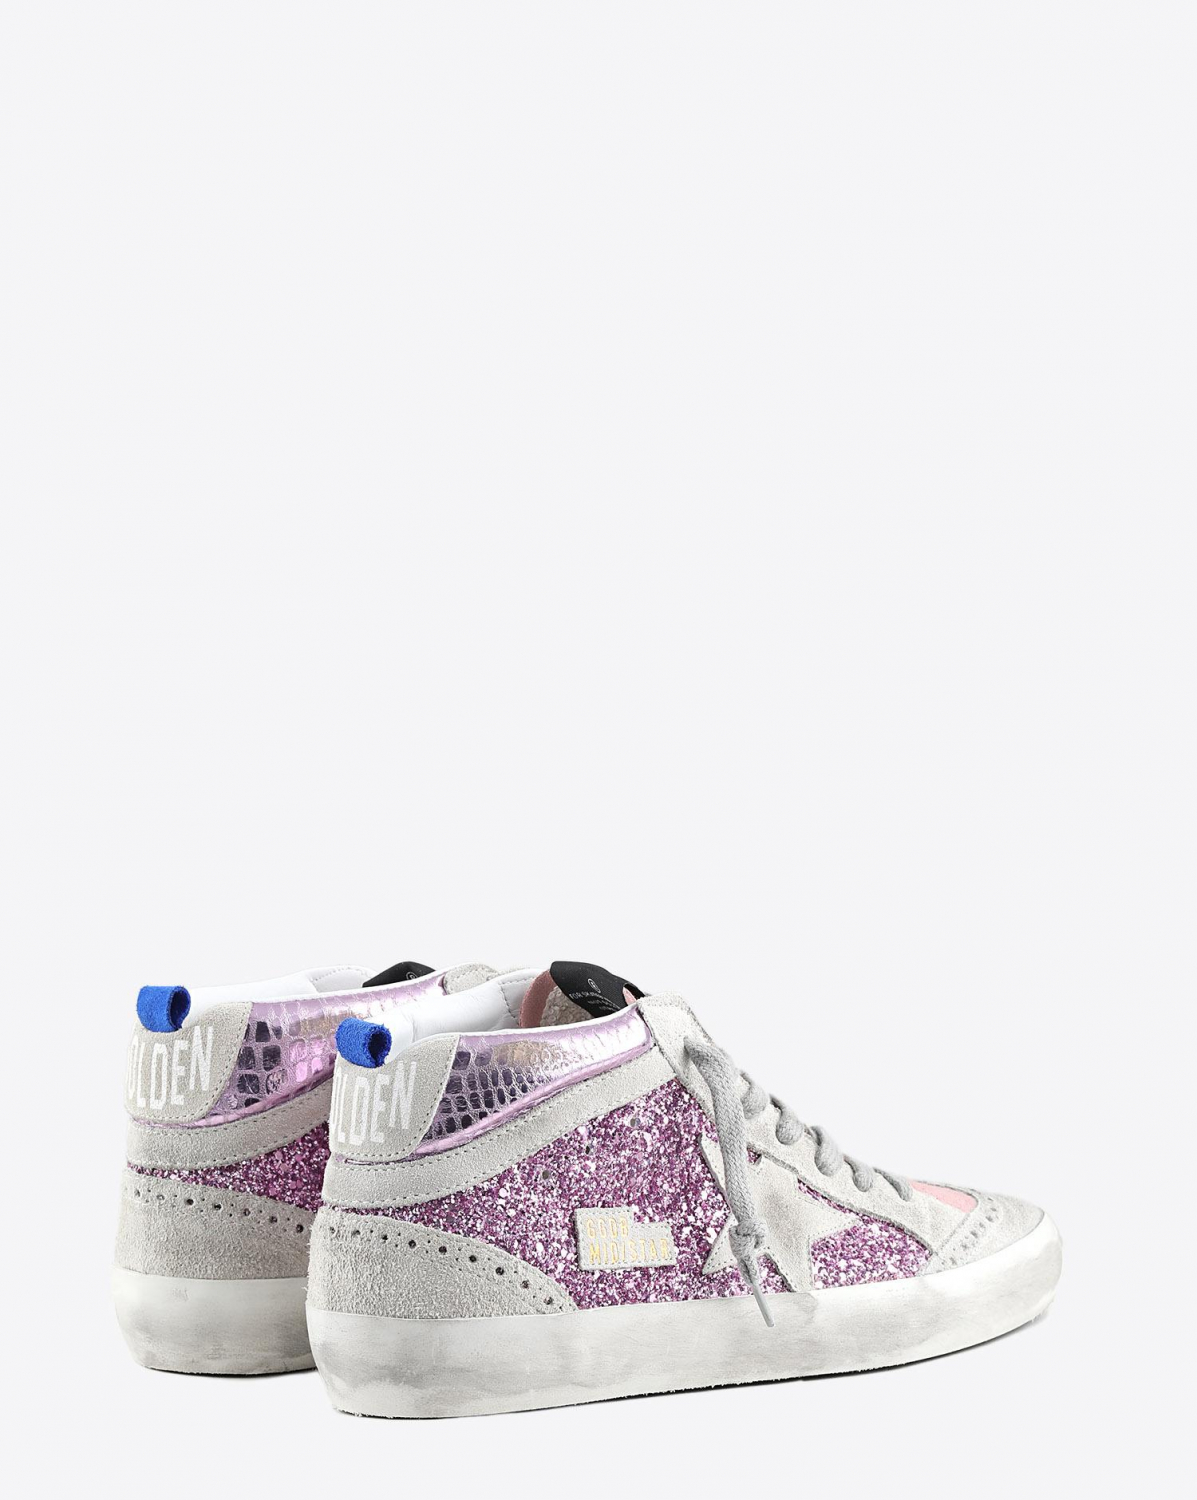 Golden Goose Woman Pré-Collection Sneakers Mid Star - Pink Glitter Cocco - Ice Star